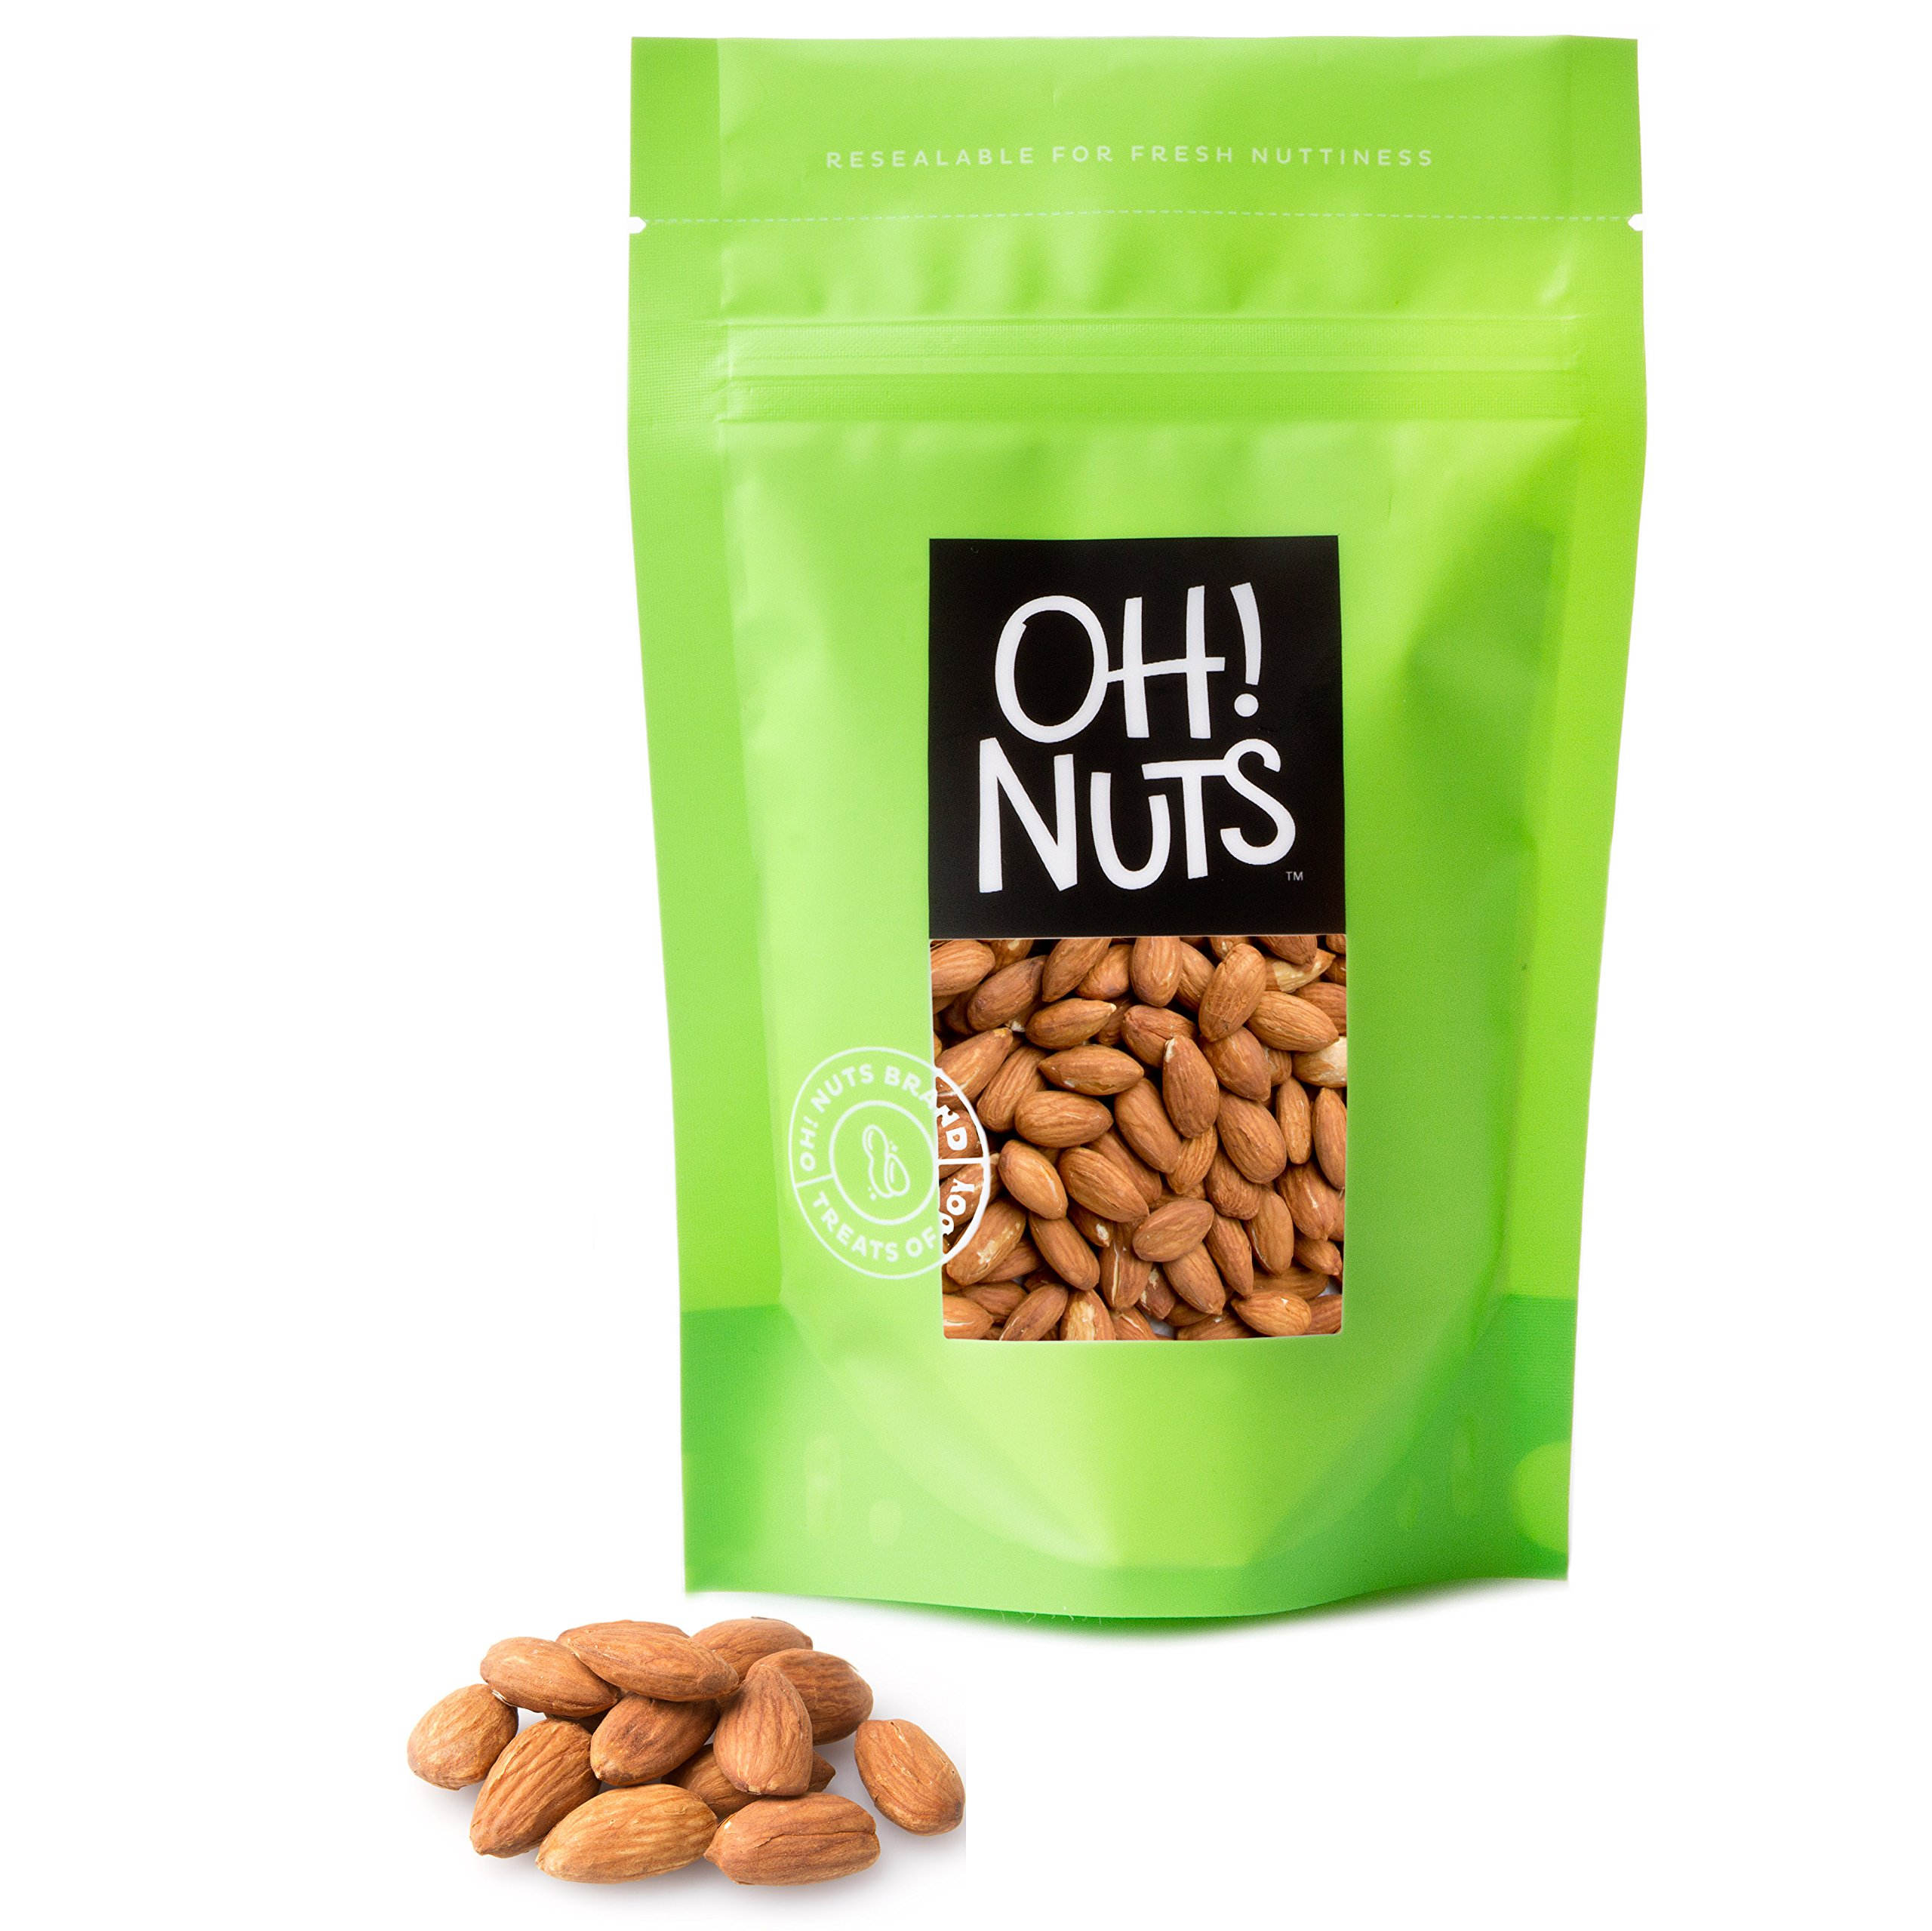 Almonds Large Whole Raw and Unsalted - Great Healthy Premium Almonds Snack - Oh! Nuts (2 LB Bag)